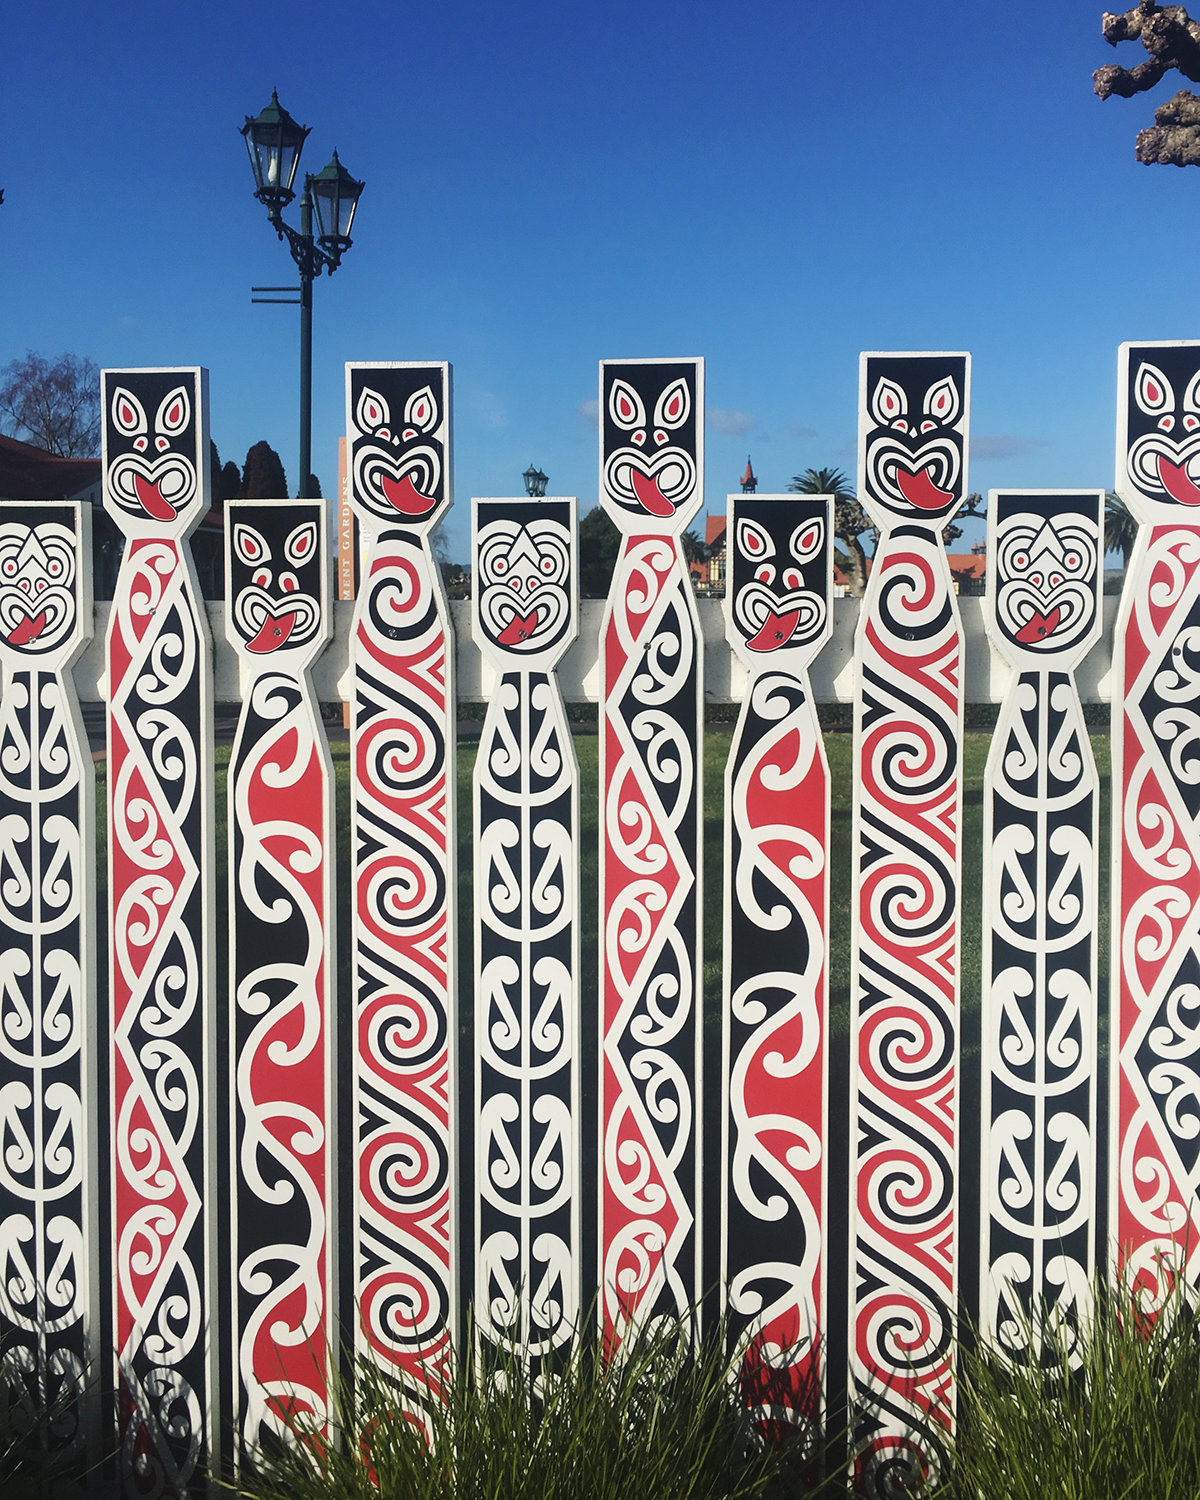 RAD AND HUNGRY: STMT X New Zealand, Rotorua Museum Fence